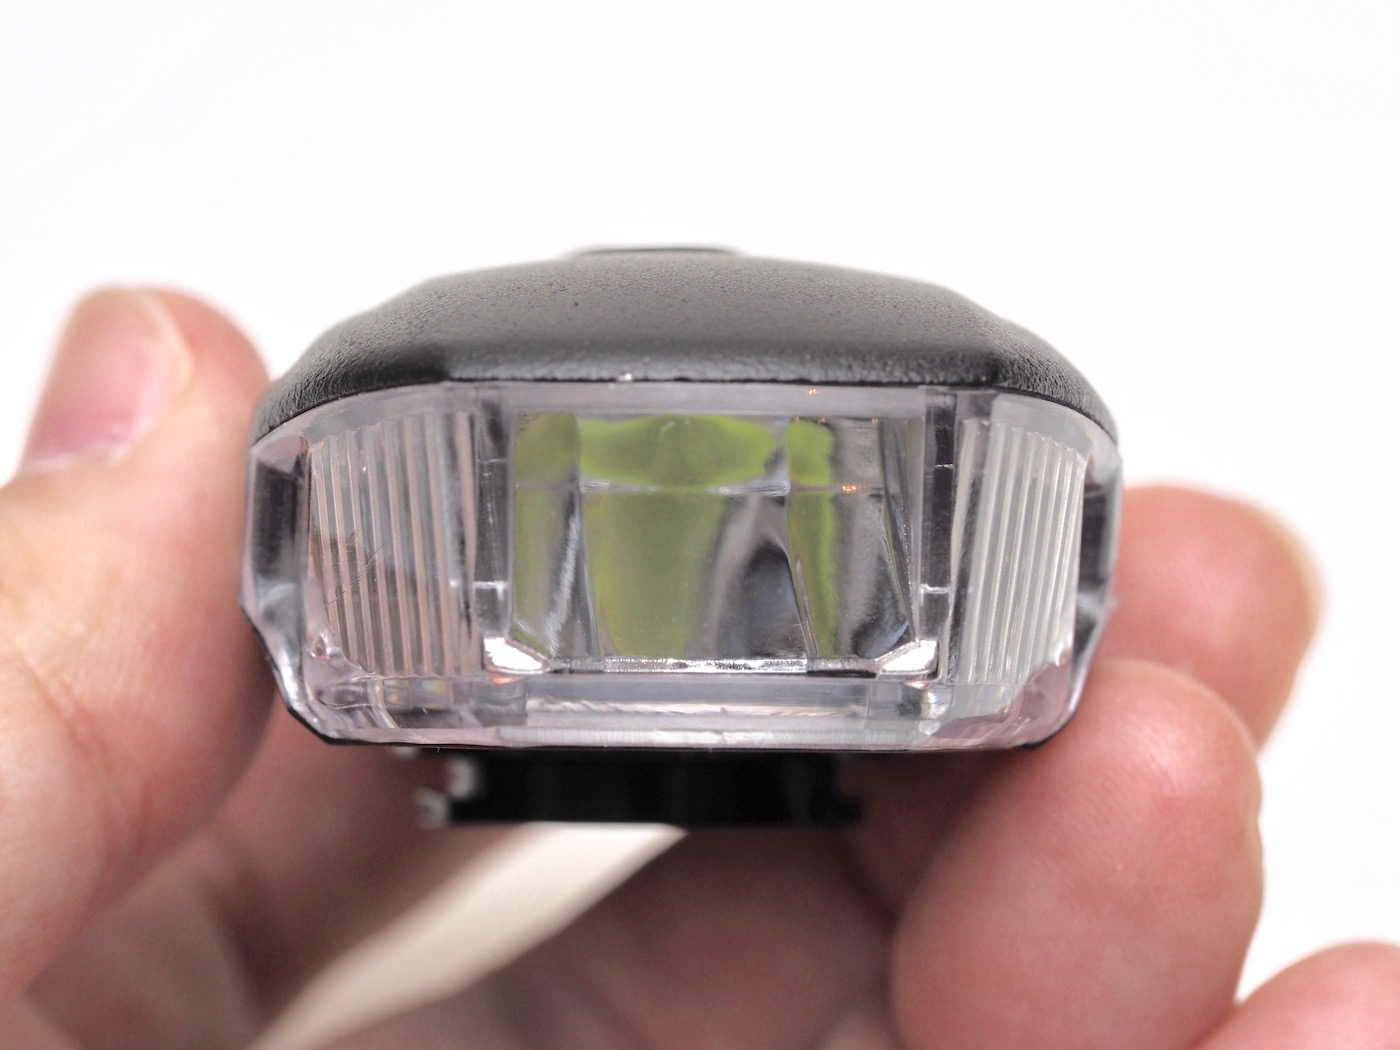 Cree xpg 2 cheap chinese led light with wide angle lens for bicycle 00007